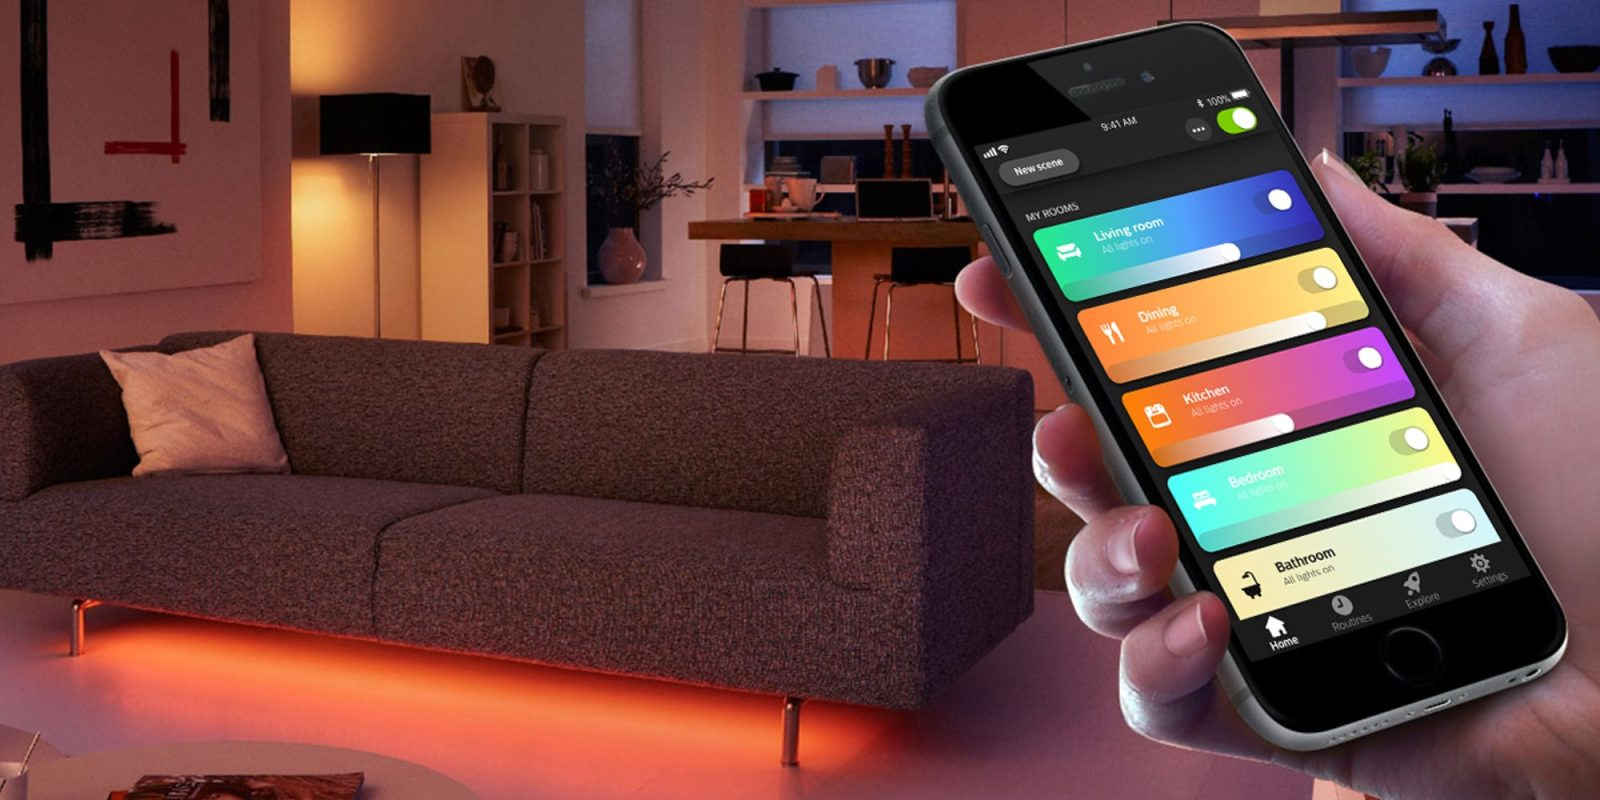 Philips Hue outage causing issues with creating new accounts